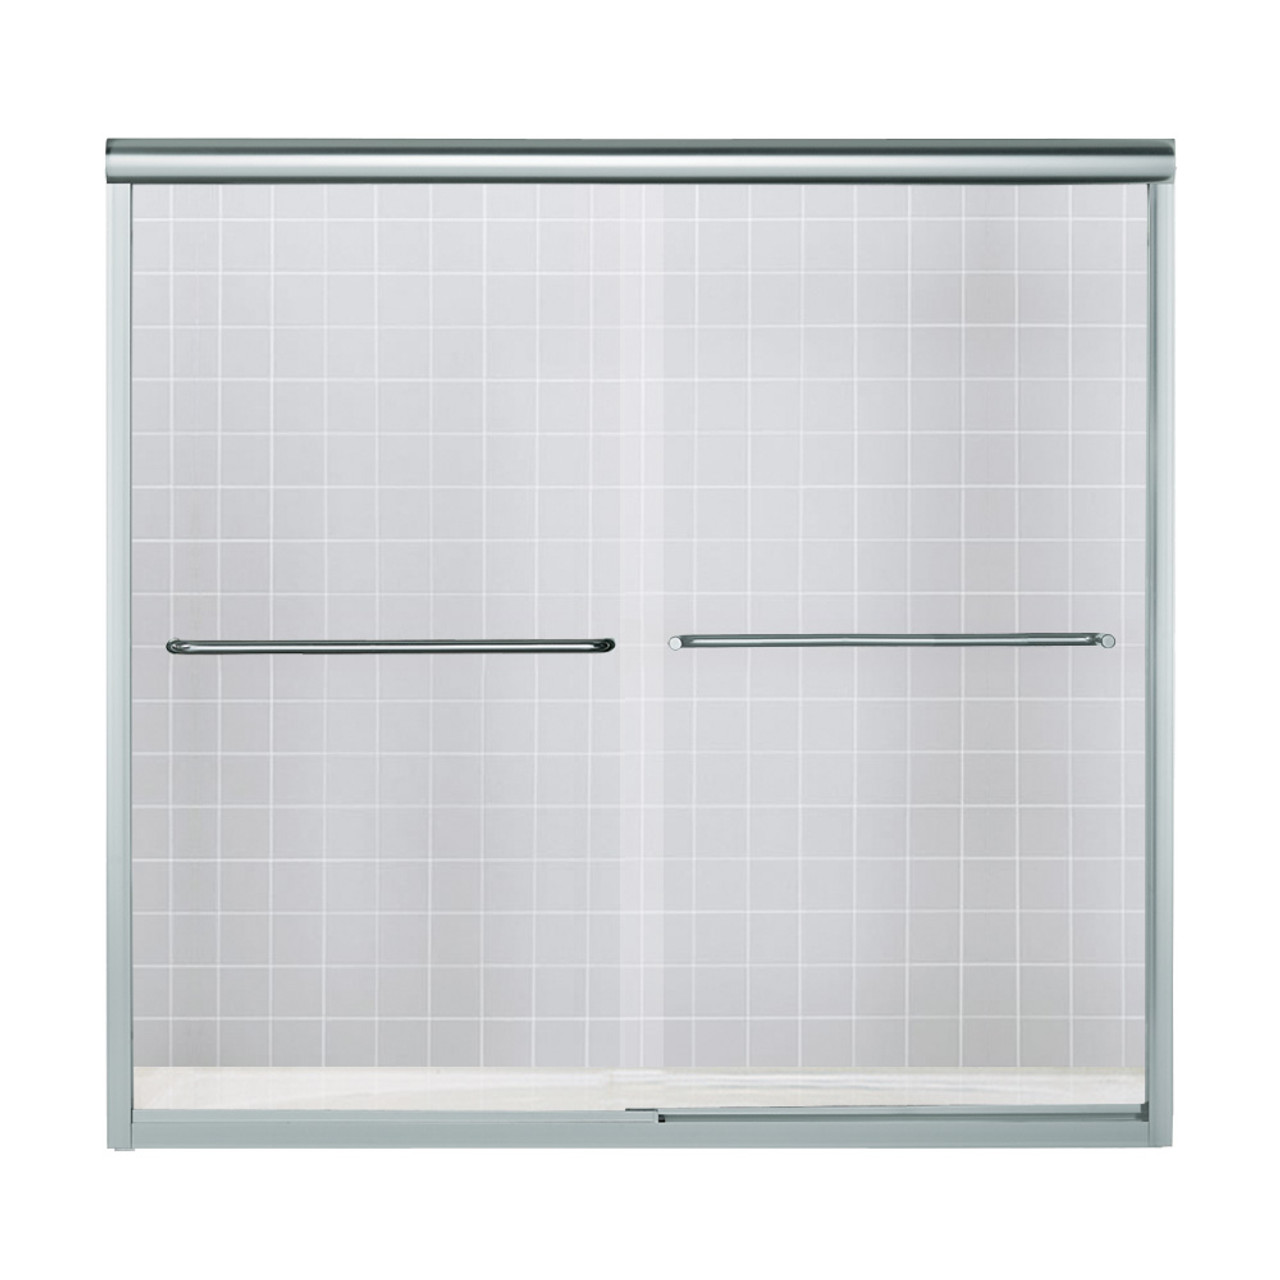 Sterling 5425 59s G05 Finesse 59 625 In X 55 75 In Frameless Alcove Shower Door With Smooth Clear Glass Texture Glass